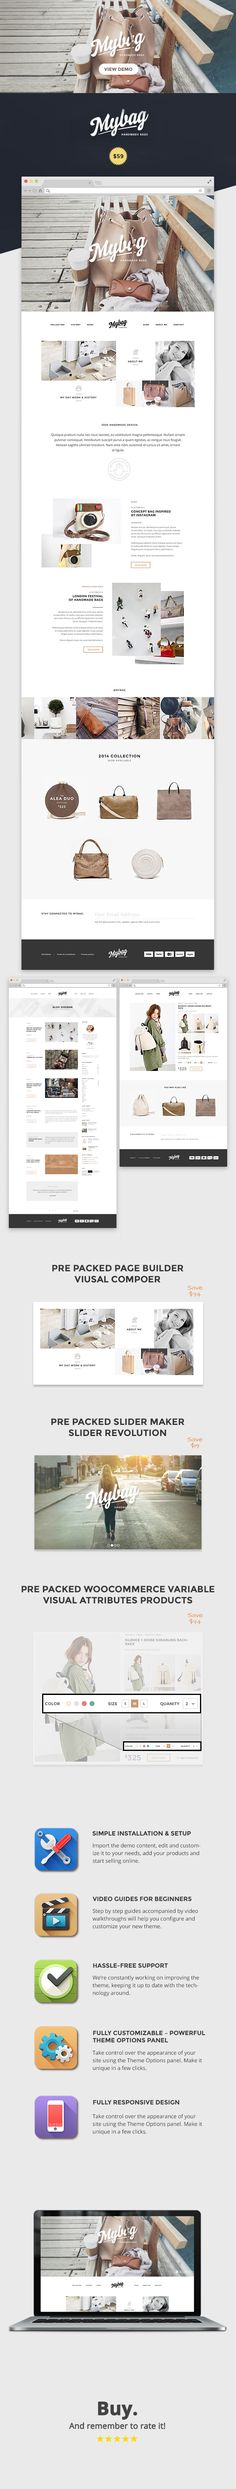 digital products marketplace direct payment nulled themes